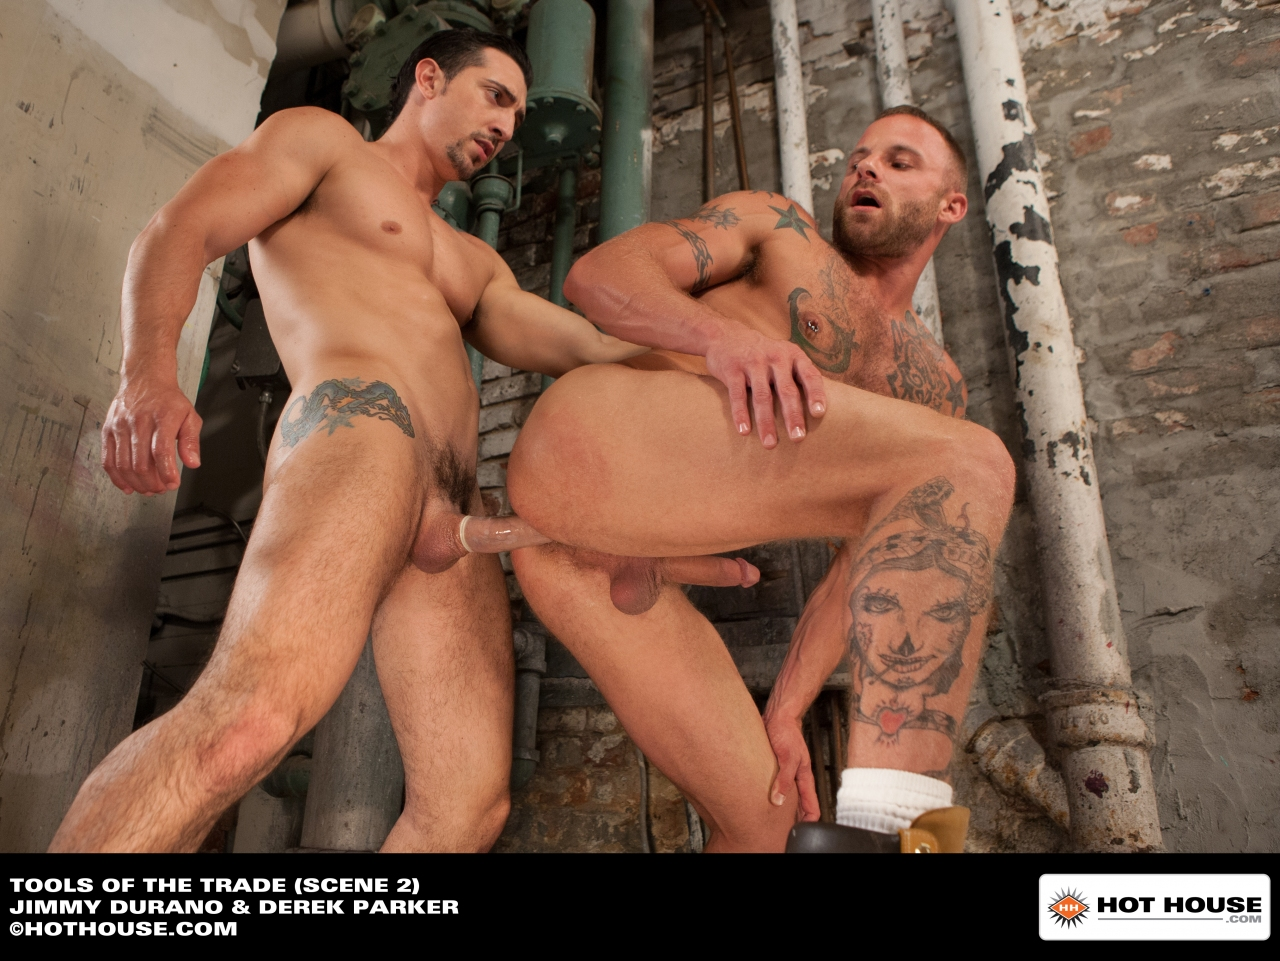 Hot House – Tools of the Trade (Scene 2)